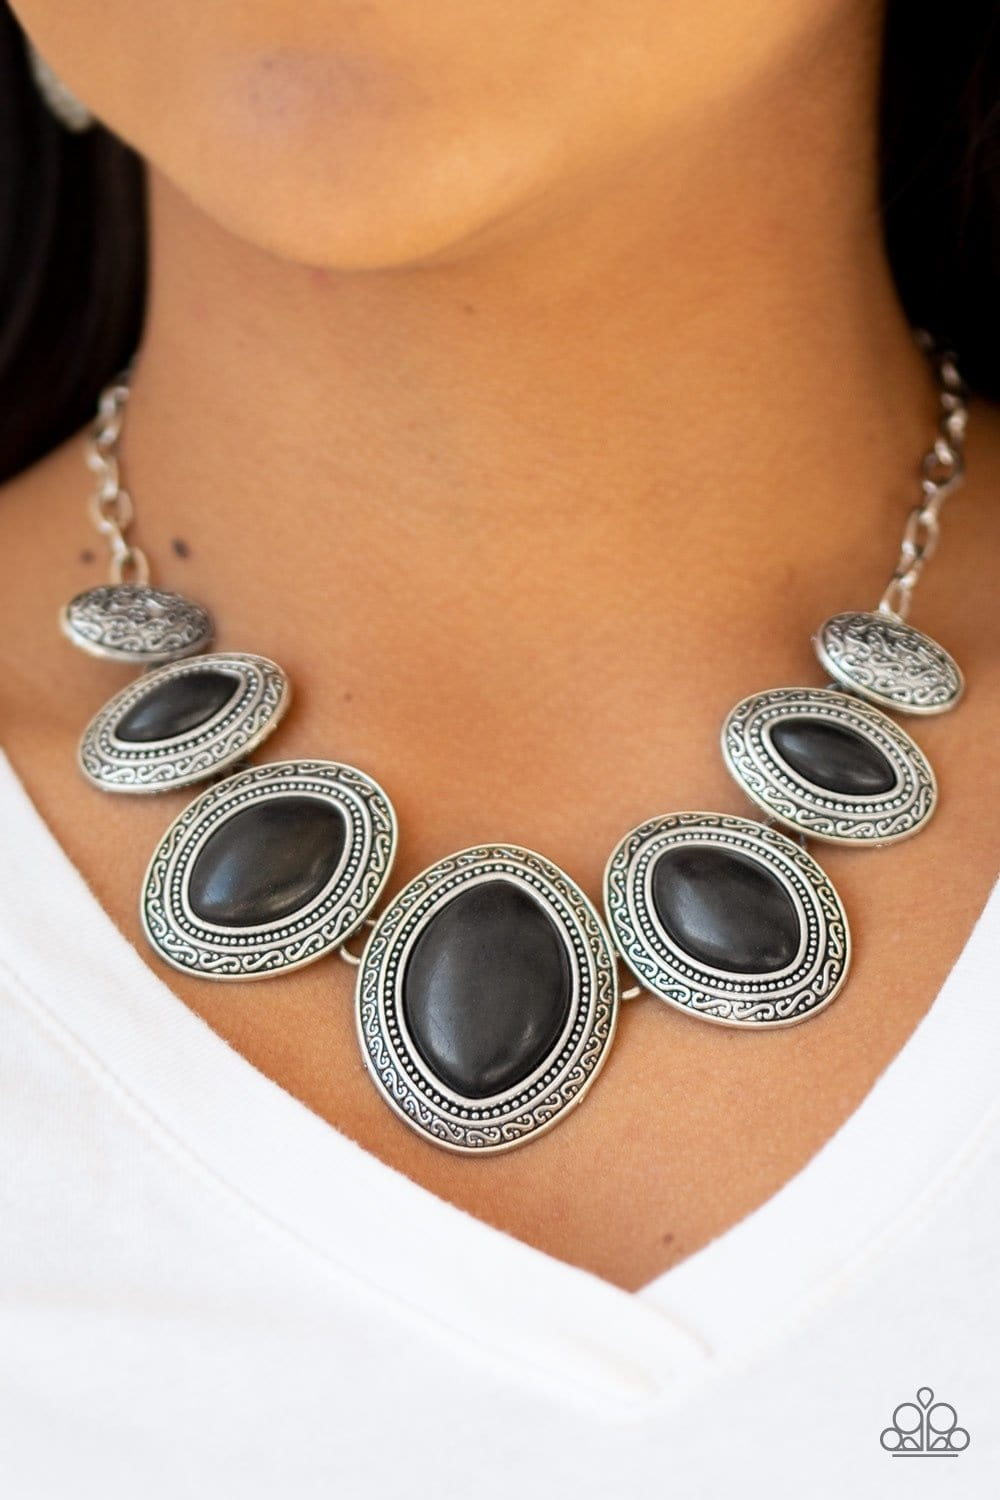 Sierra Serenity - Black: Paparazzi Accessories - Jewels N' Thingz Boutique